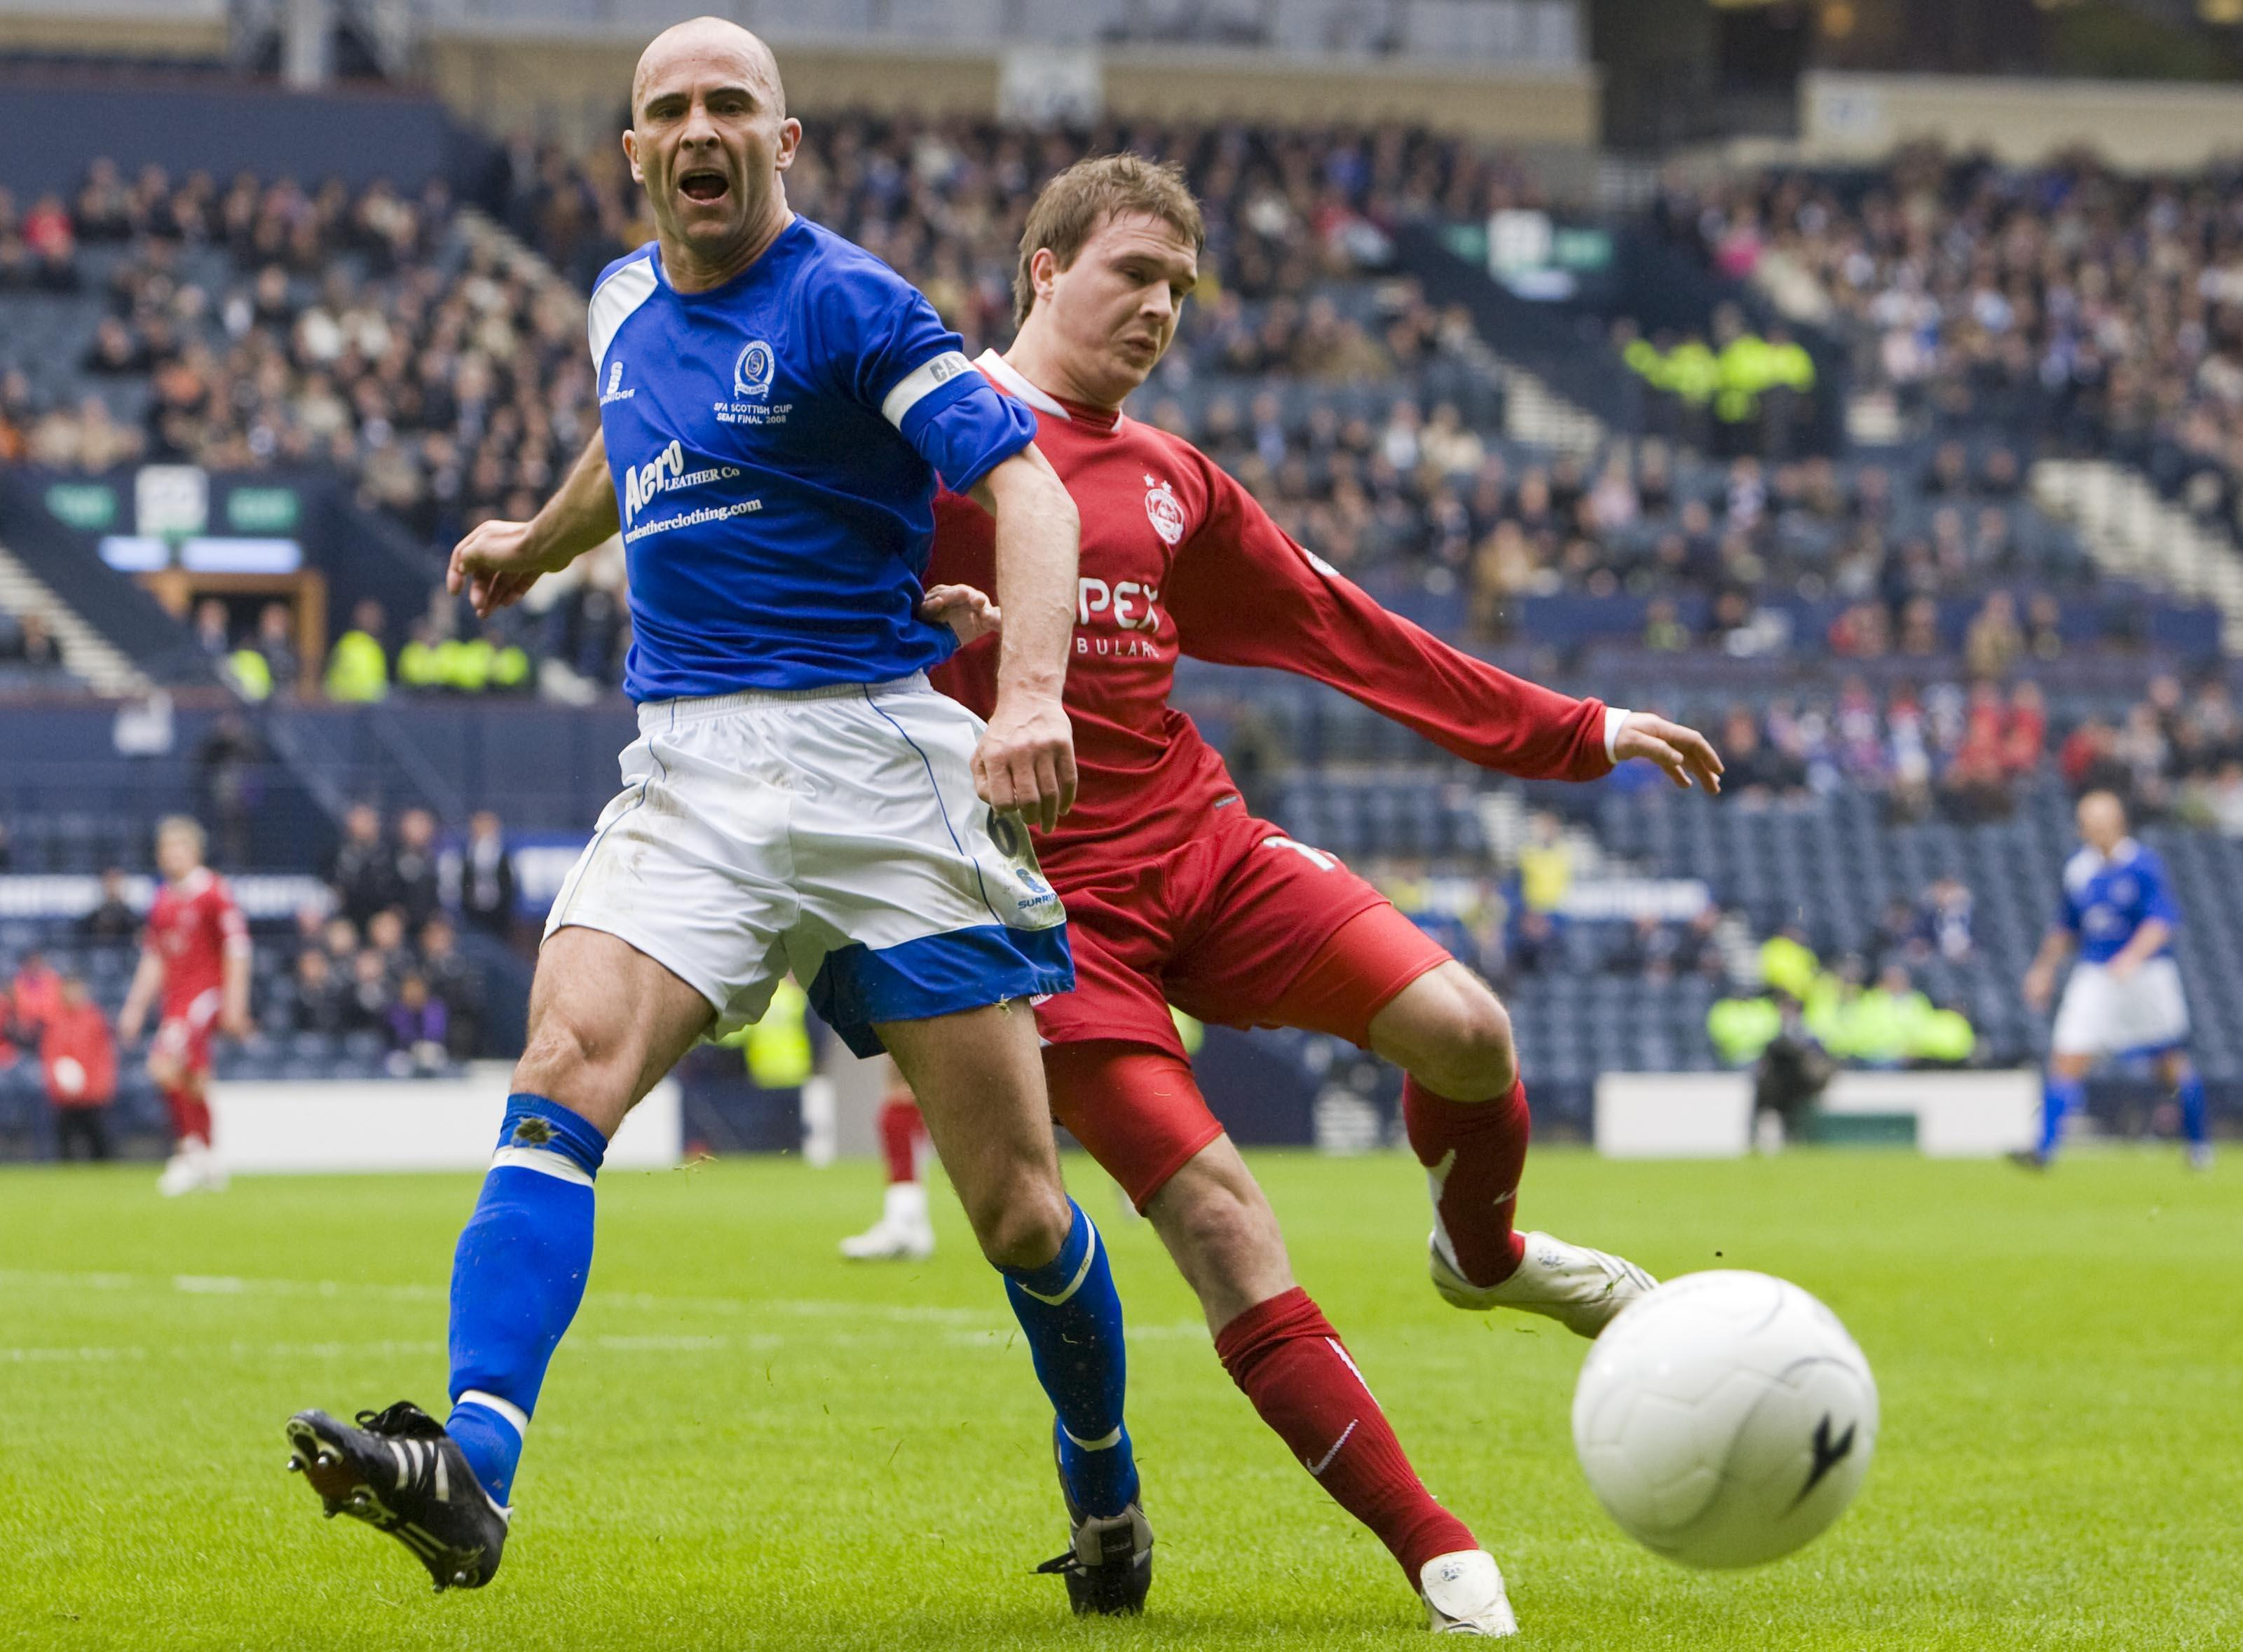 Queen of the South's Jim Thomson battles with Aberdeen's Darren Mackie.